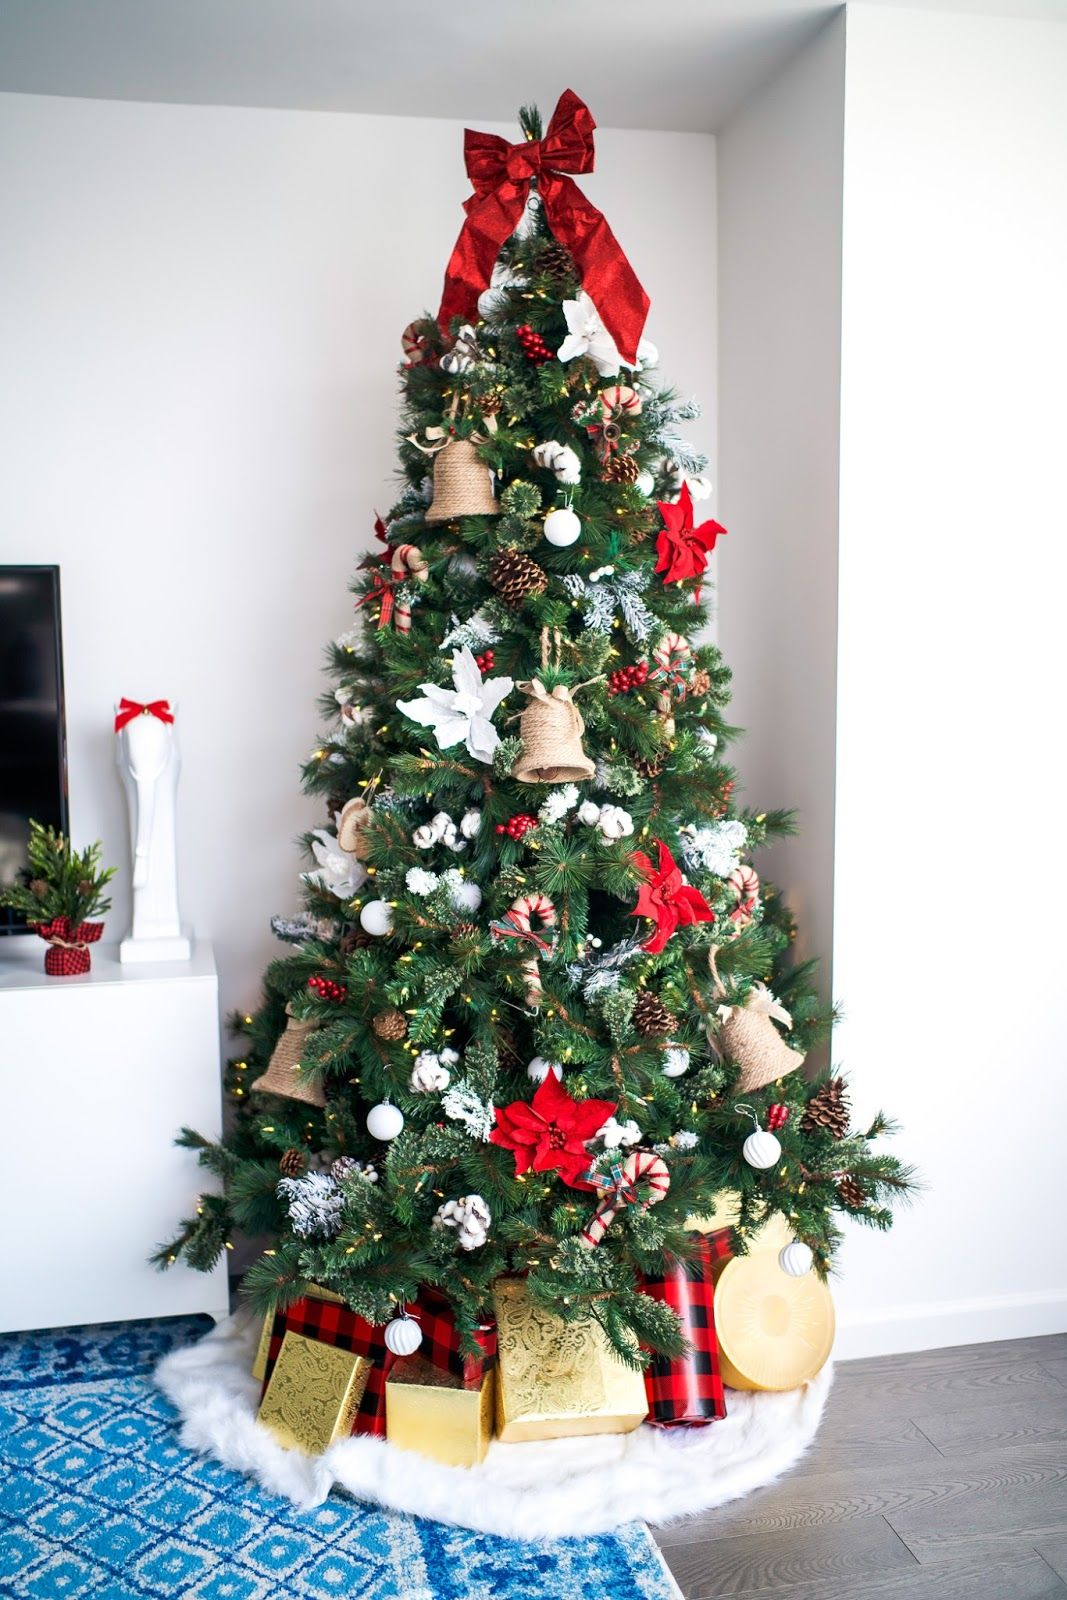 My Christmas Tree How I Decorated The Apartment Covering Bases Fashion And Travel Blog New York City